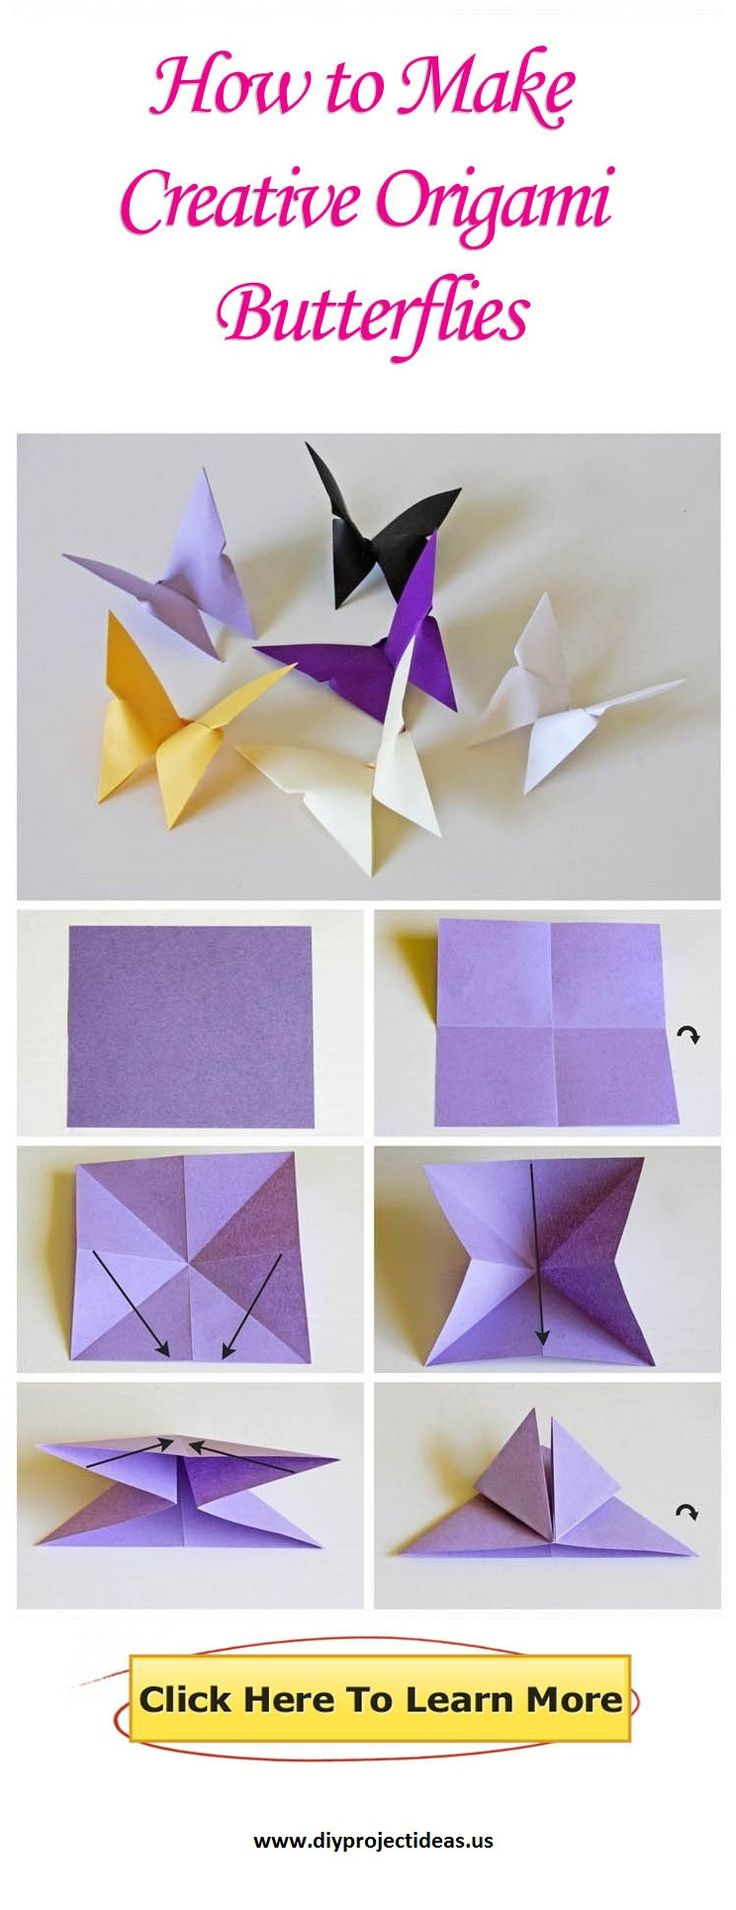 photo tutorial: How to Make Creative Origami Butterflies